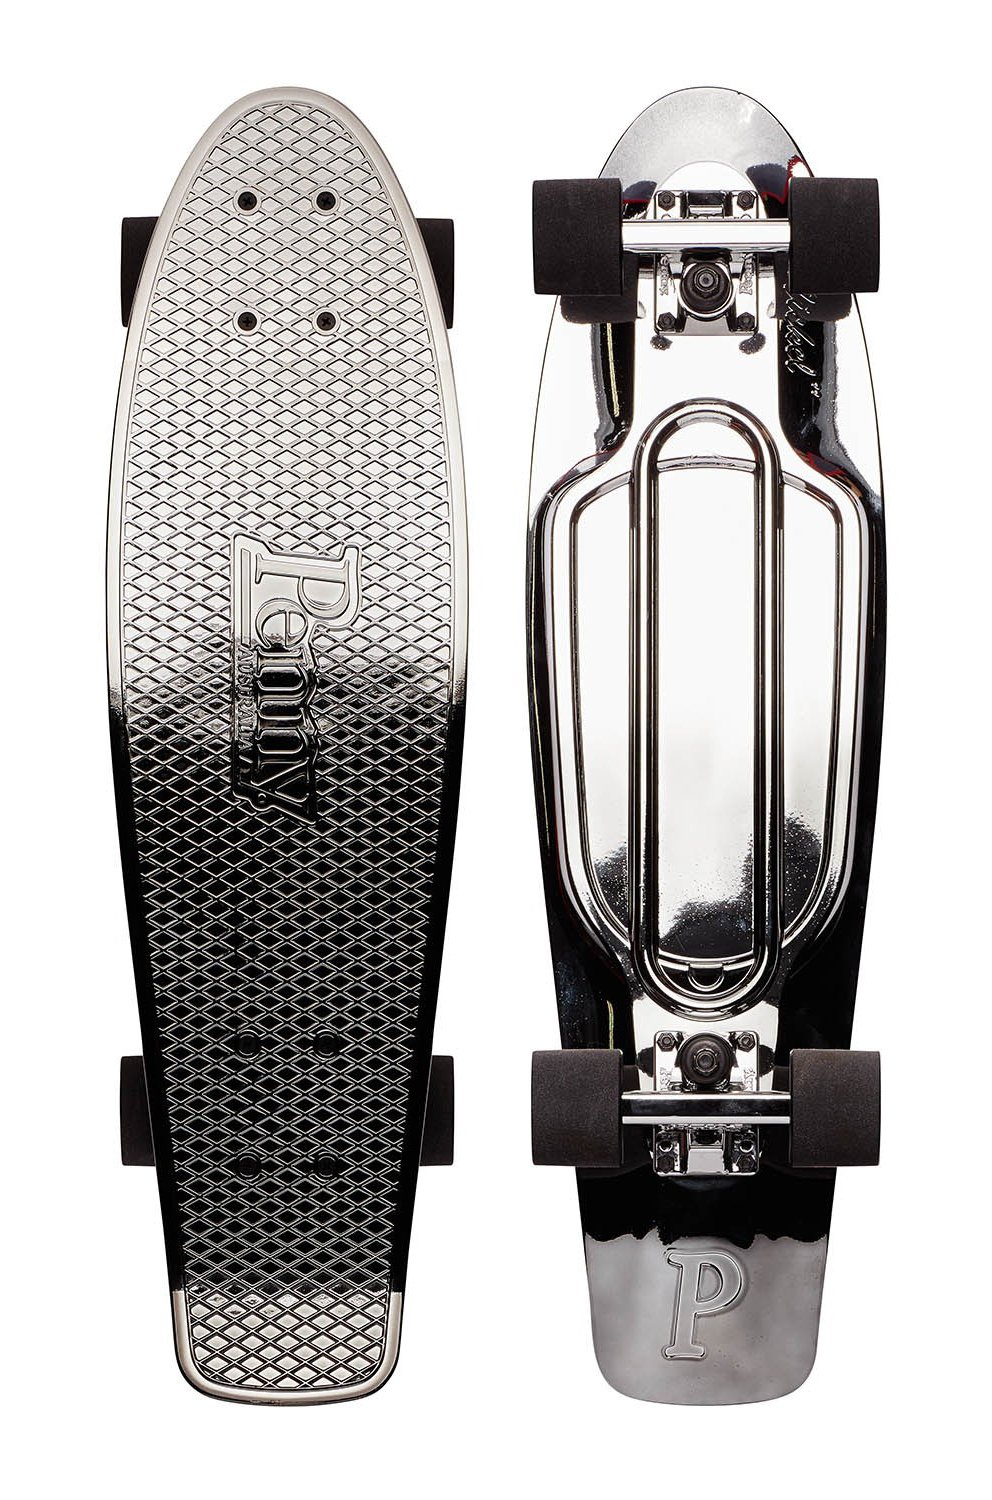 Penny - Metalic Nickel 27 - Gunmetal Black - penny boards